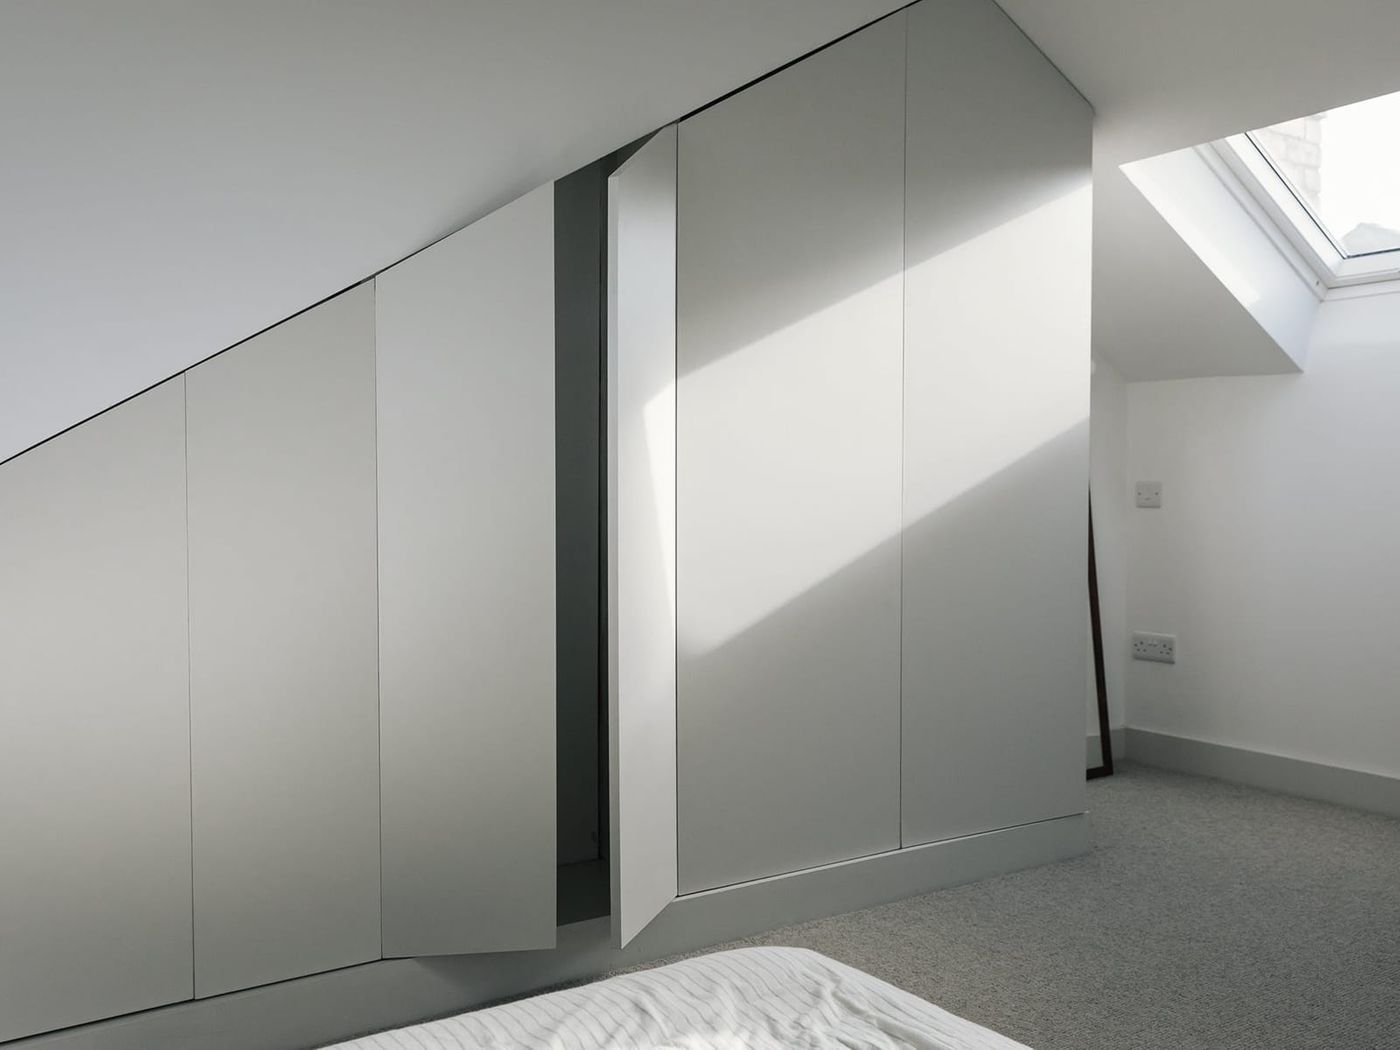 Interior view of built in joinery within the white and grey light filled bedroom in From Works loft conversion and rear dormer extension in Walkley, Sheffield.